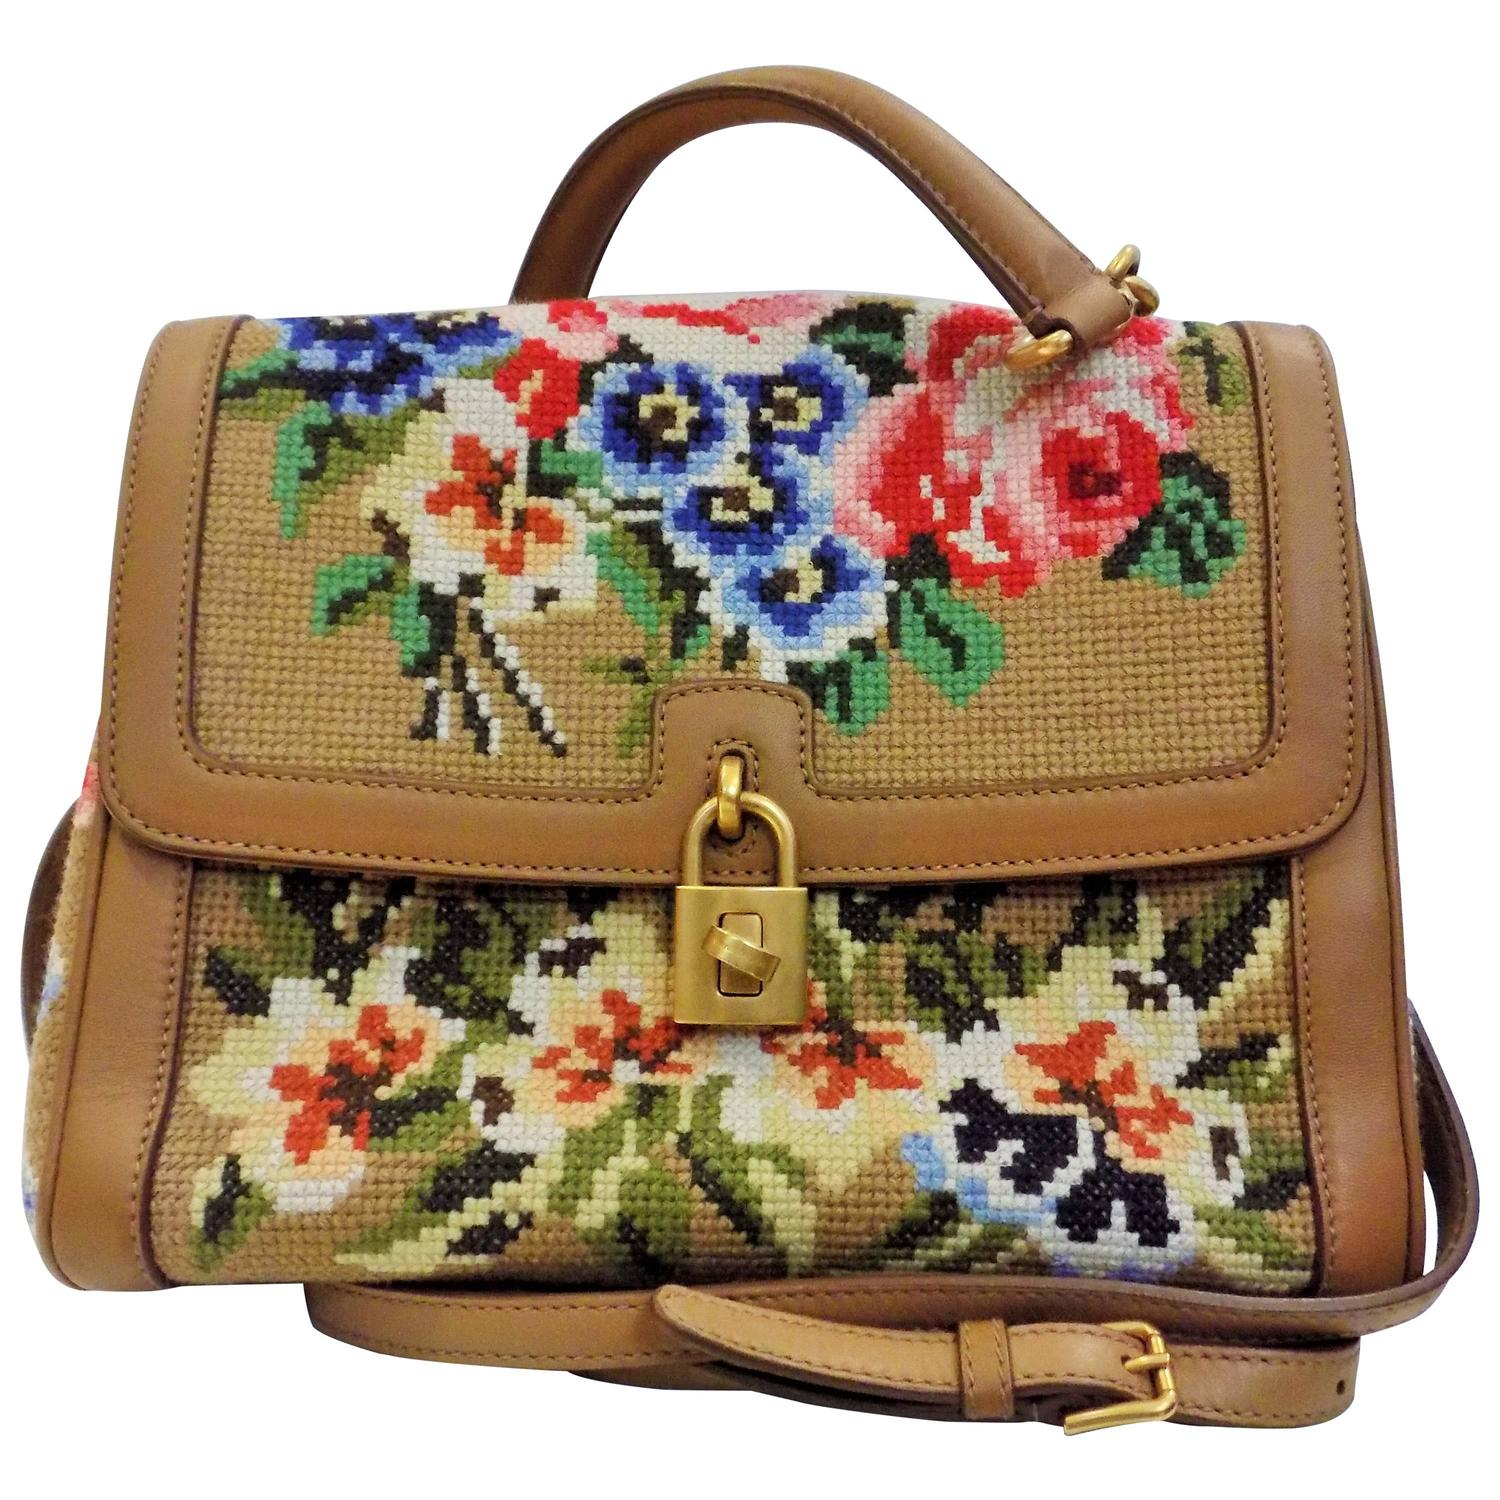 Dolce And Gabbana Needlepoint Bag For Sale At 1stdibs